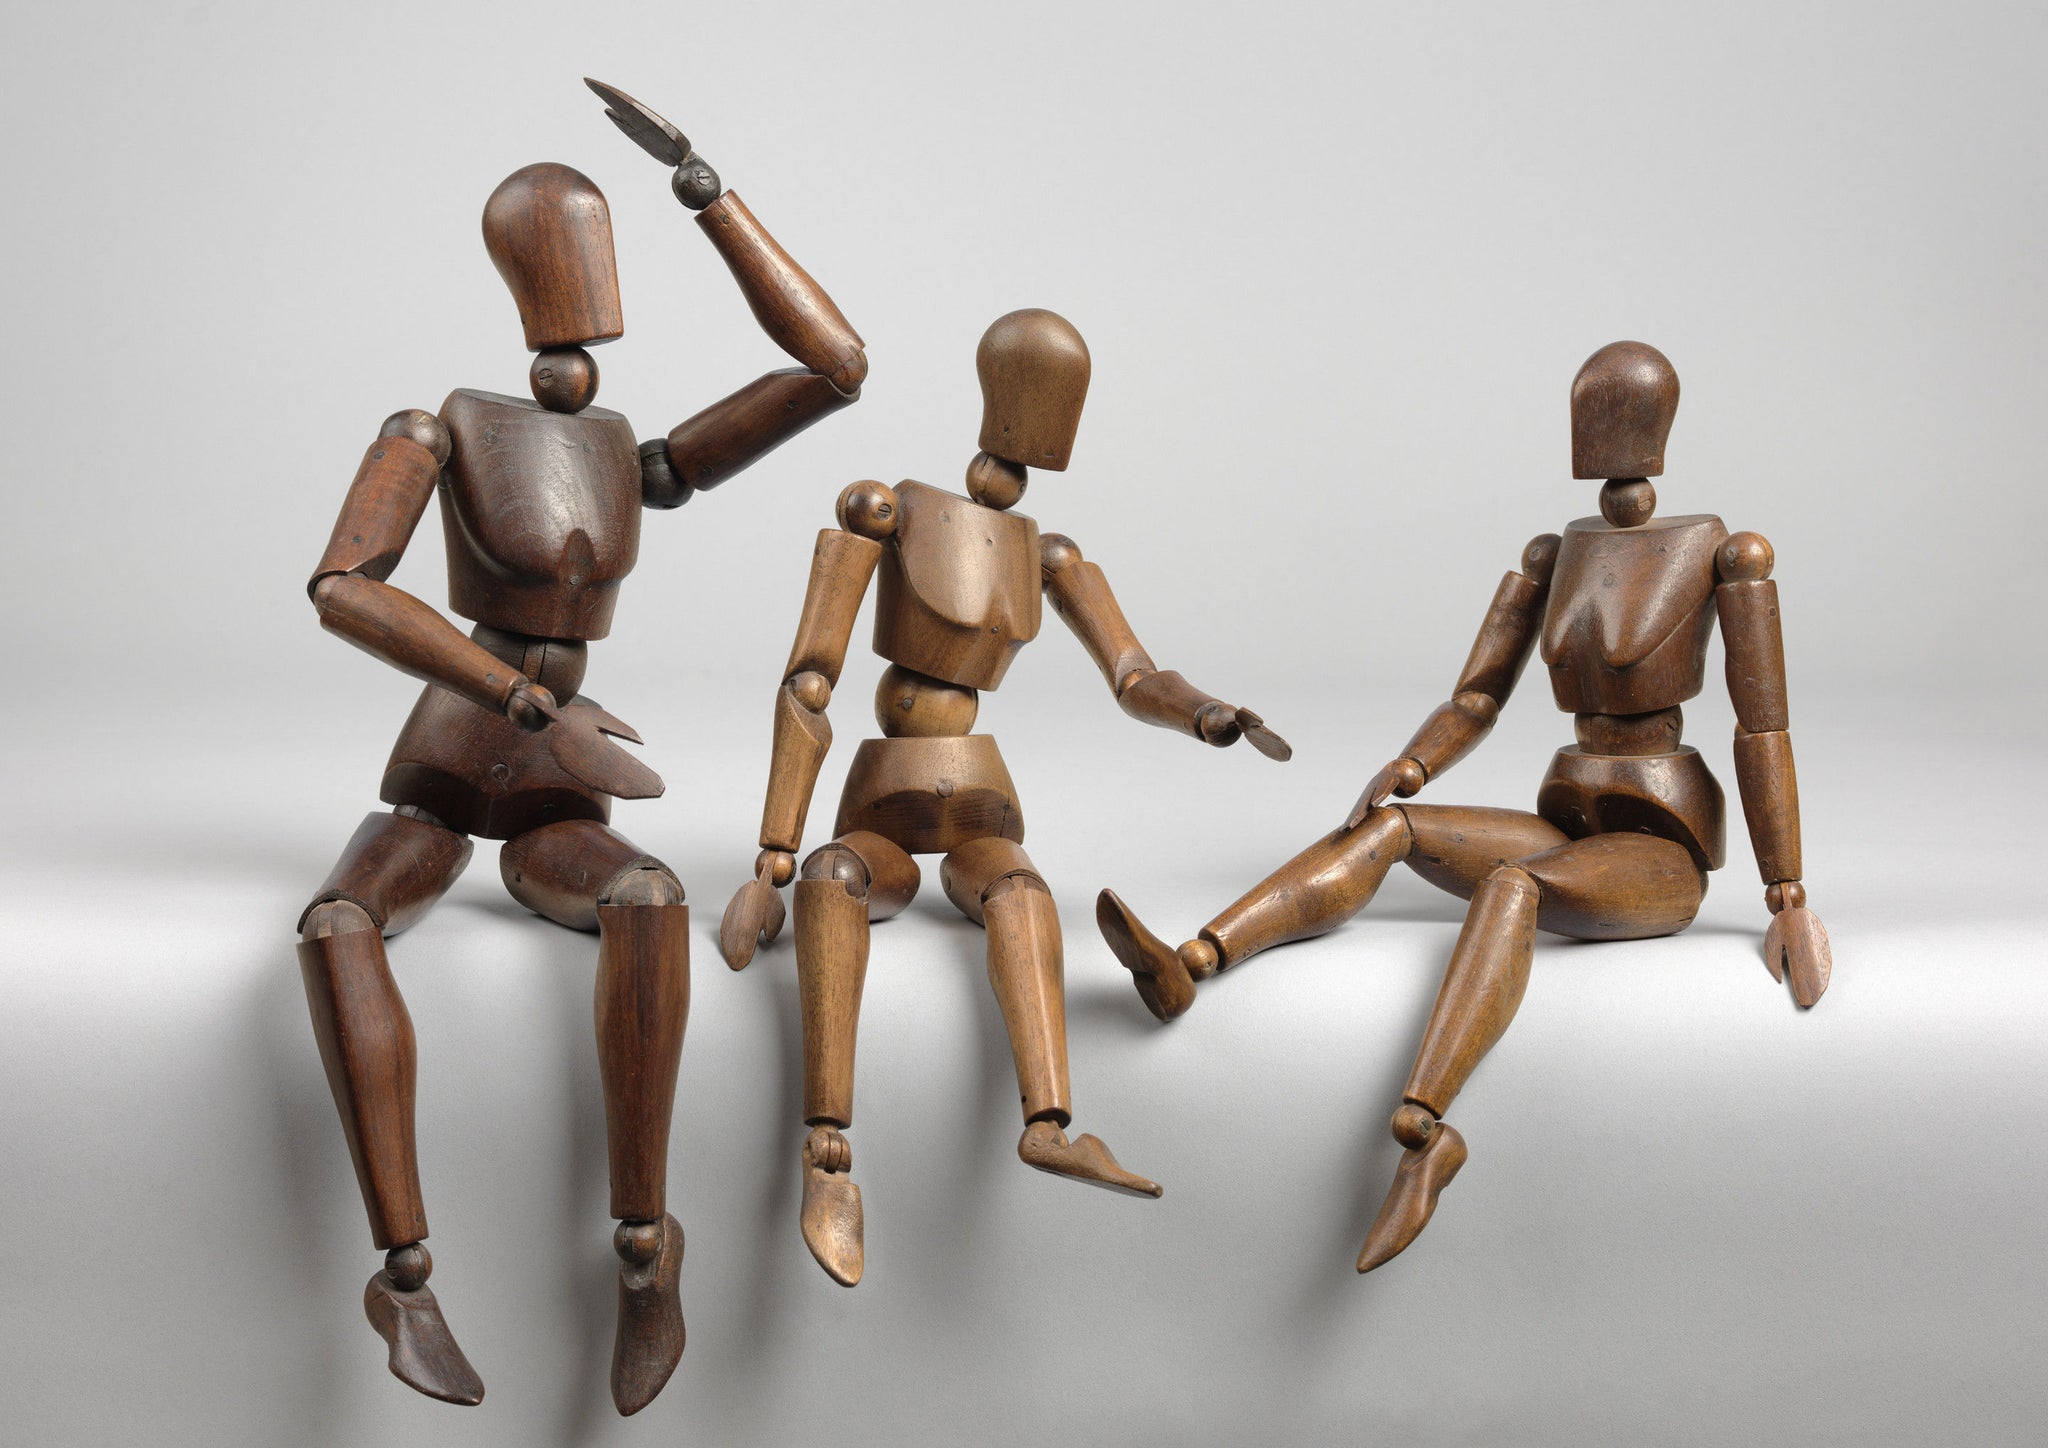 Three  Original Articulated Artist's Mannequins or ' Lay' Figures